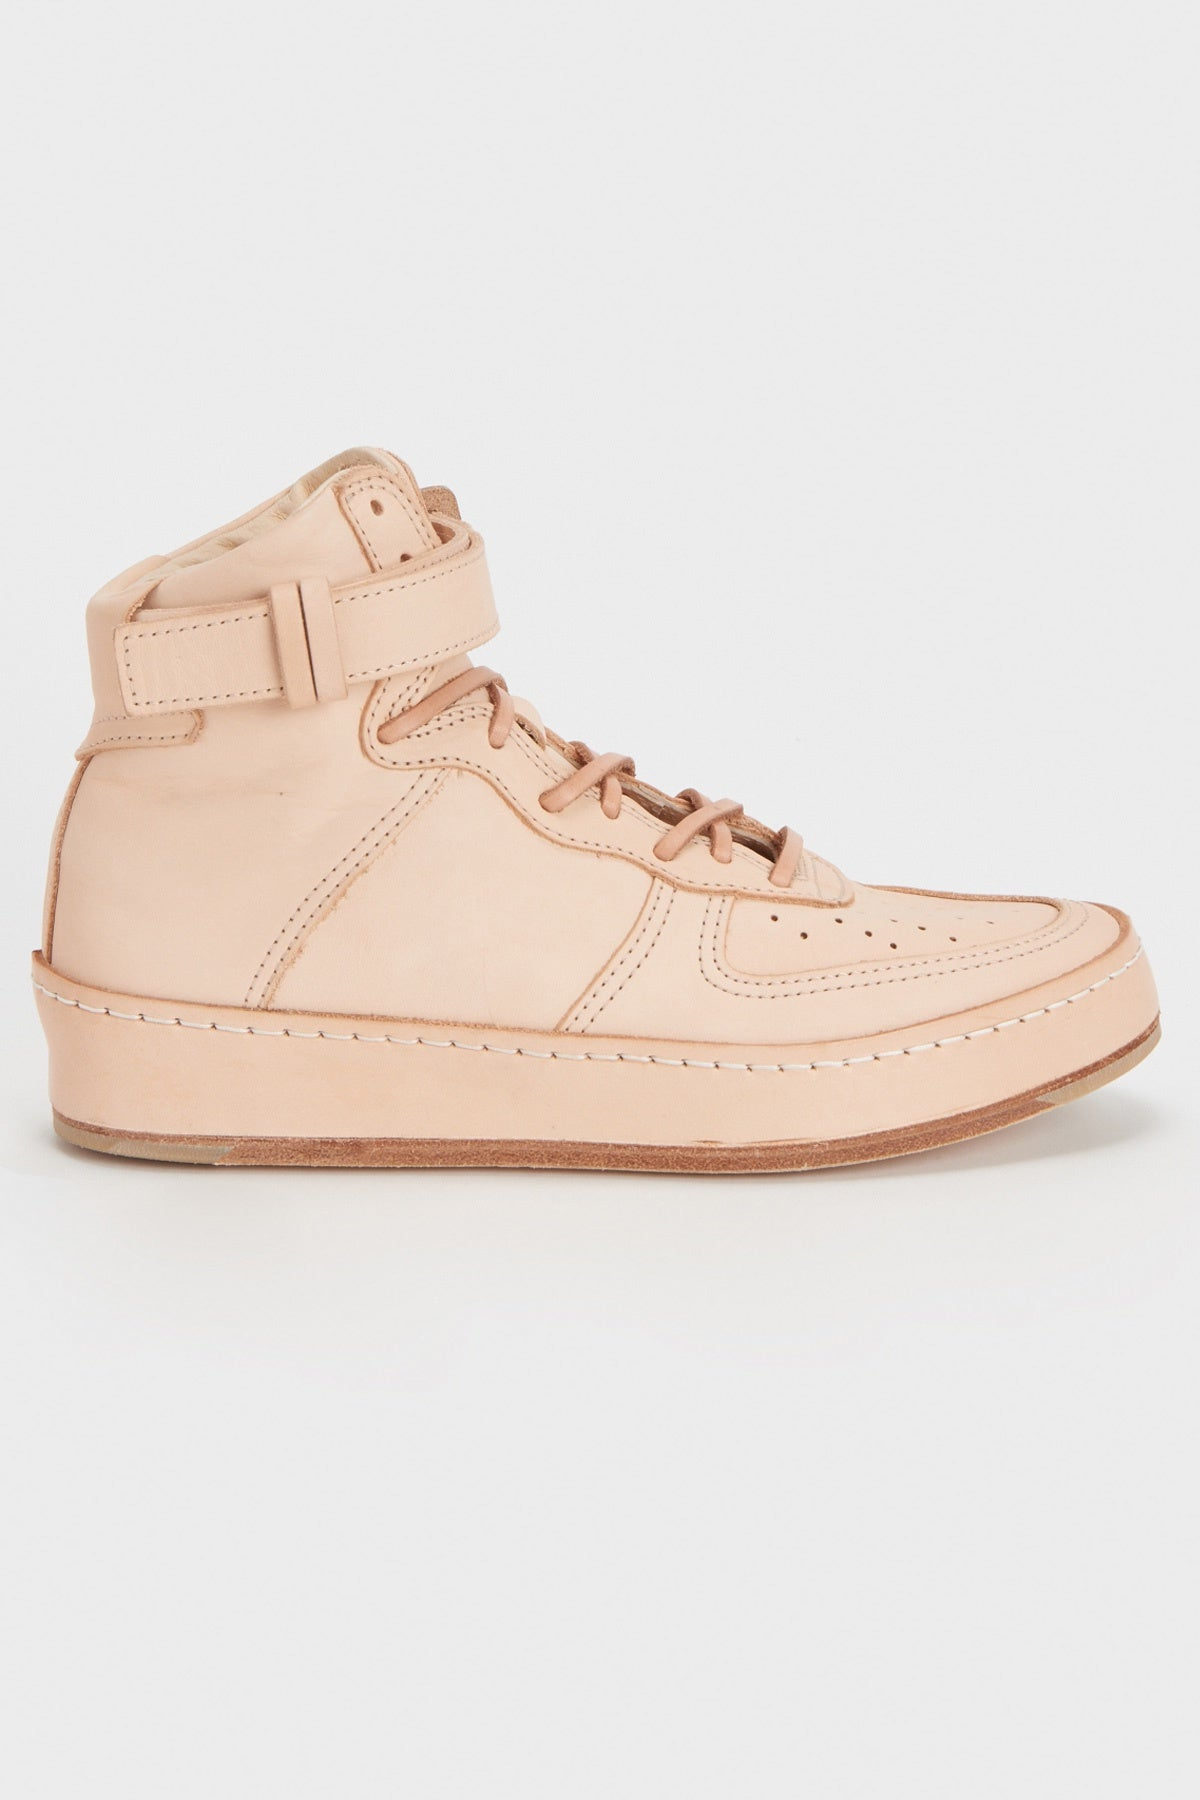 Hender Scheme - MIP-01 - Natural - Canoe Club